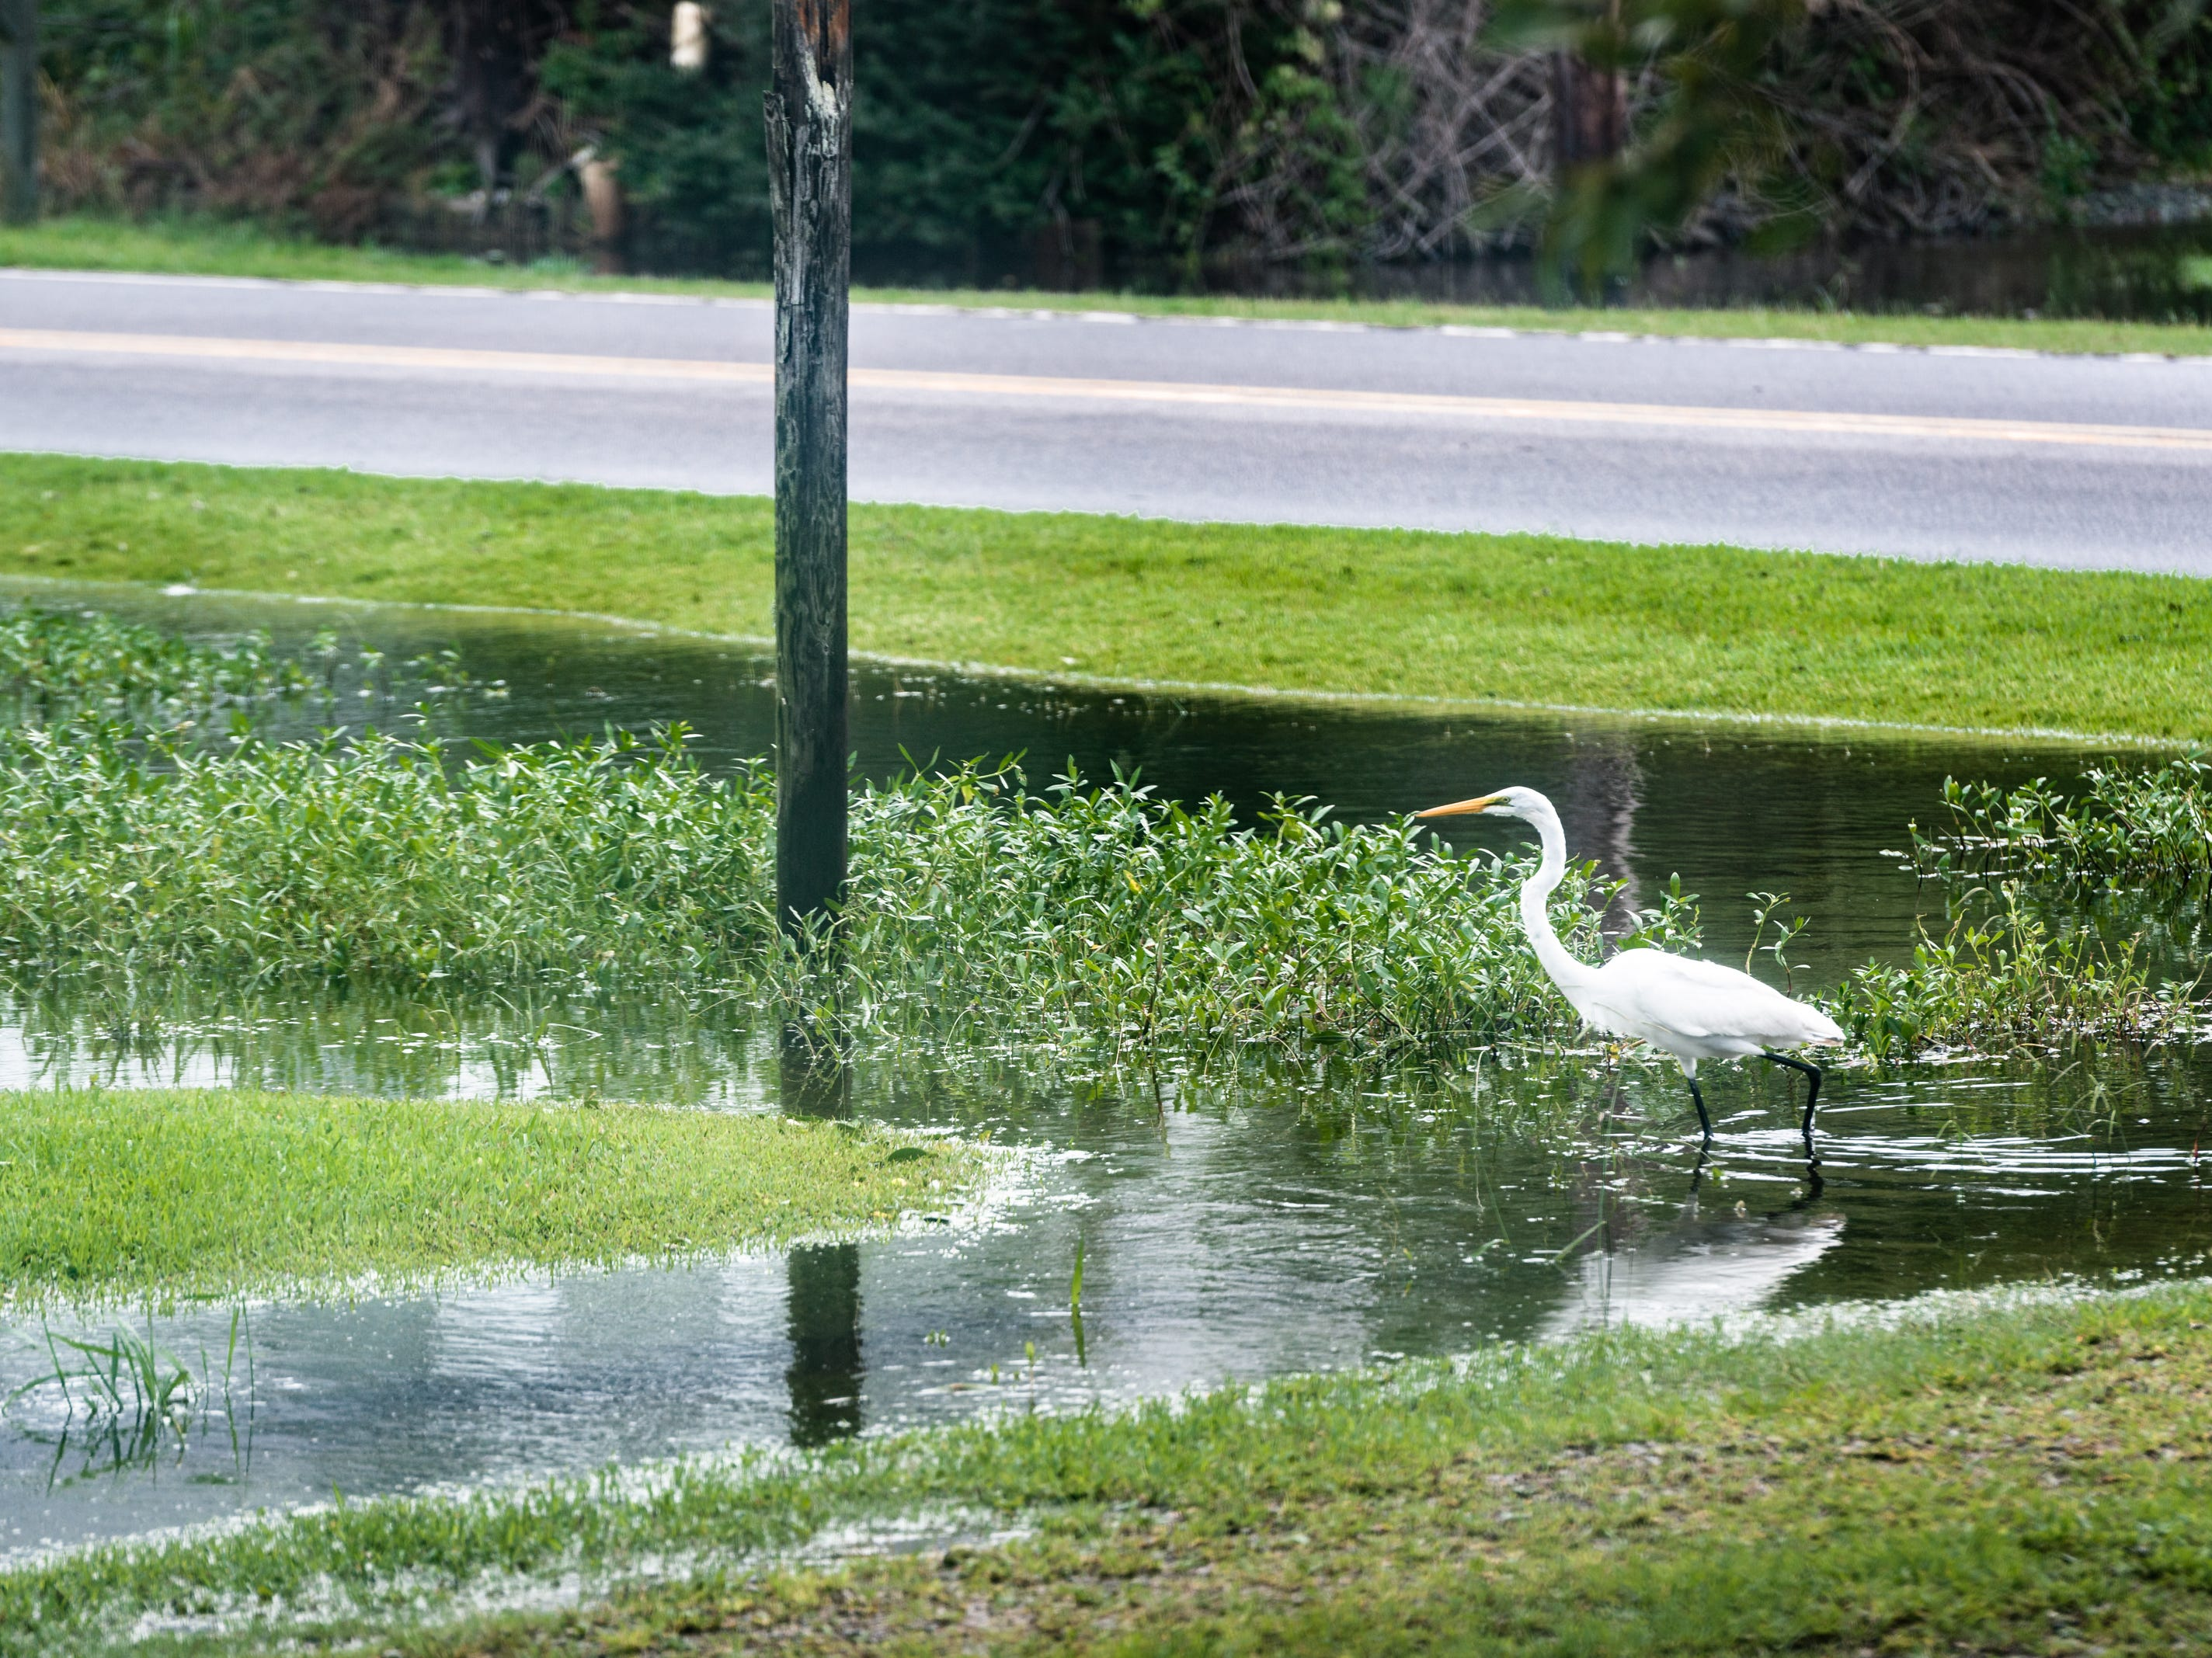 An egret walks through a large flooded area in the front yard of a home on Main Street in Swan Quarter, N.C Sept. 15, 2018 after Hurricane Florence made landfall Friday morning.